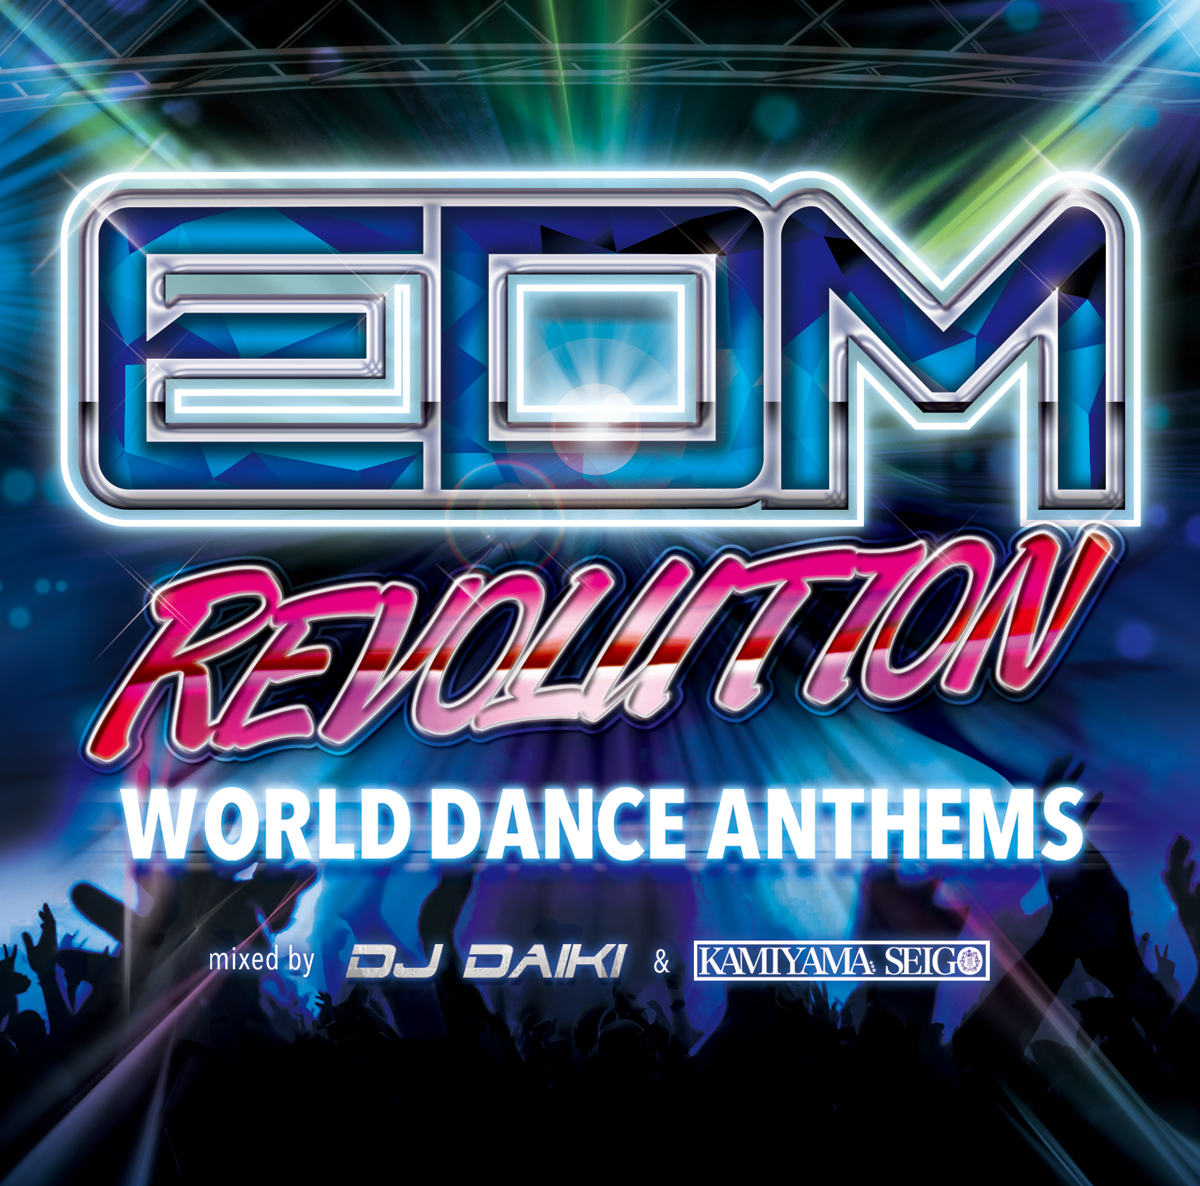 EDM REVOLUTION -WORLD OF DANCE- mixed by DJ DAIKI & KAMIYAMA SEIGO